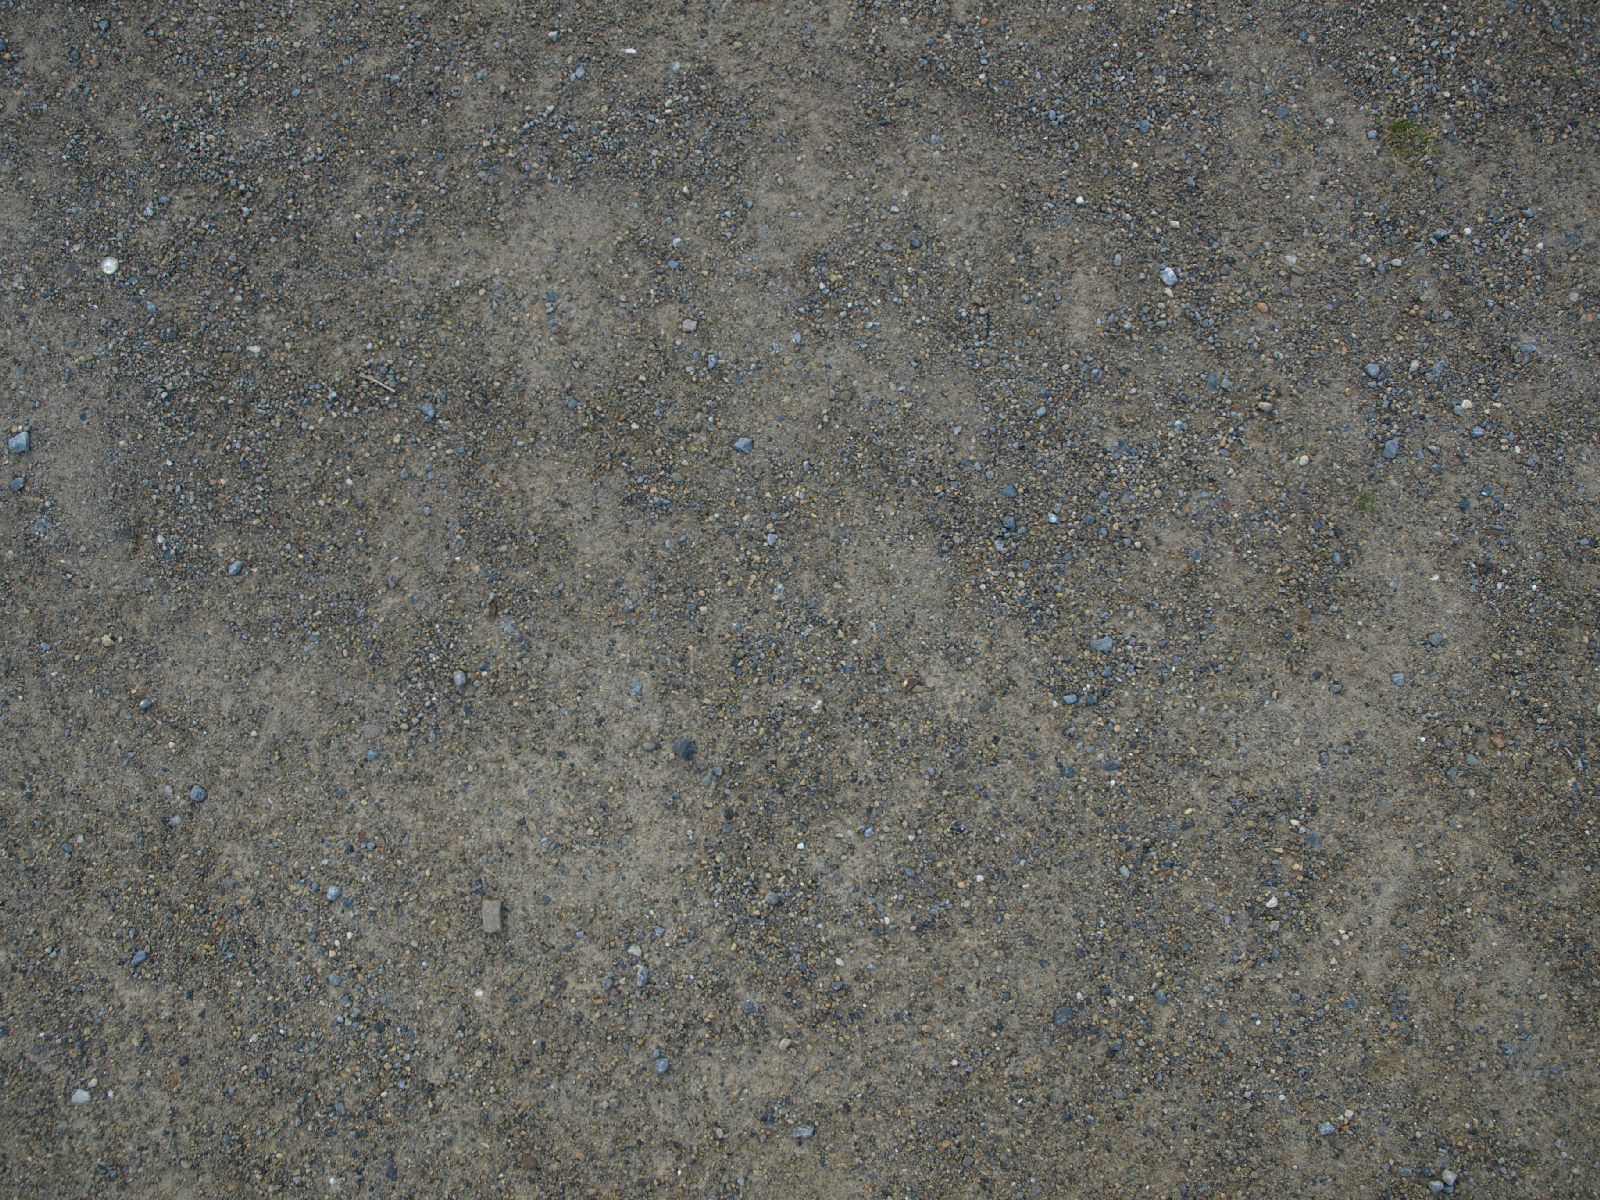 Ground-Nature_Texture_A_P8214559